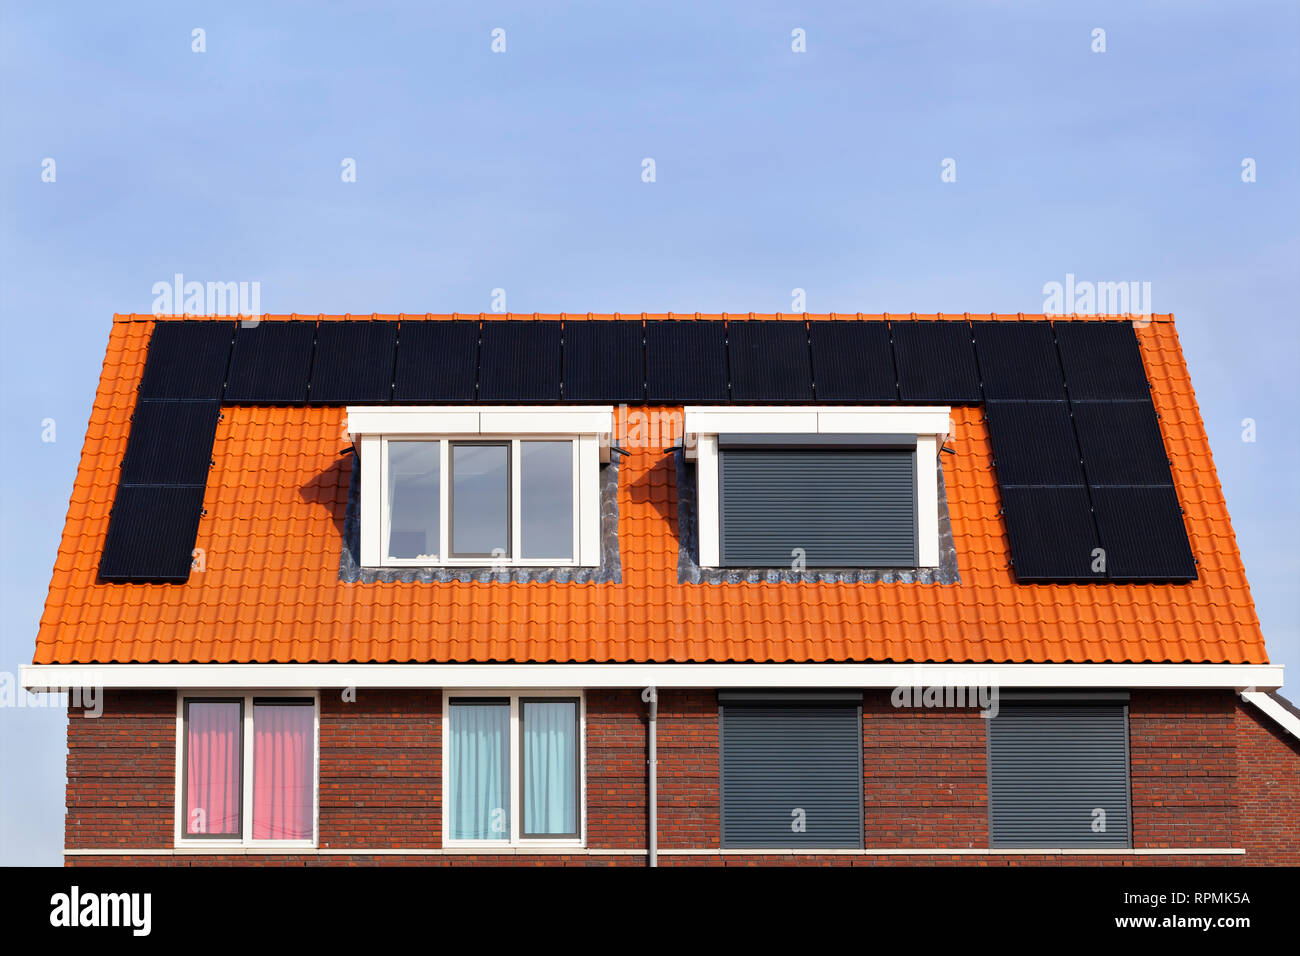 Neighbors With Different Lifestyles In The Netherlands